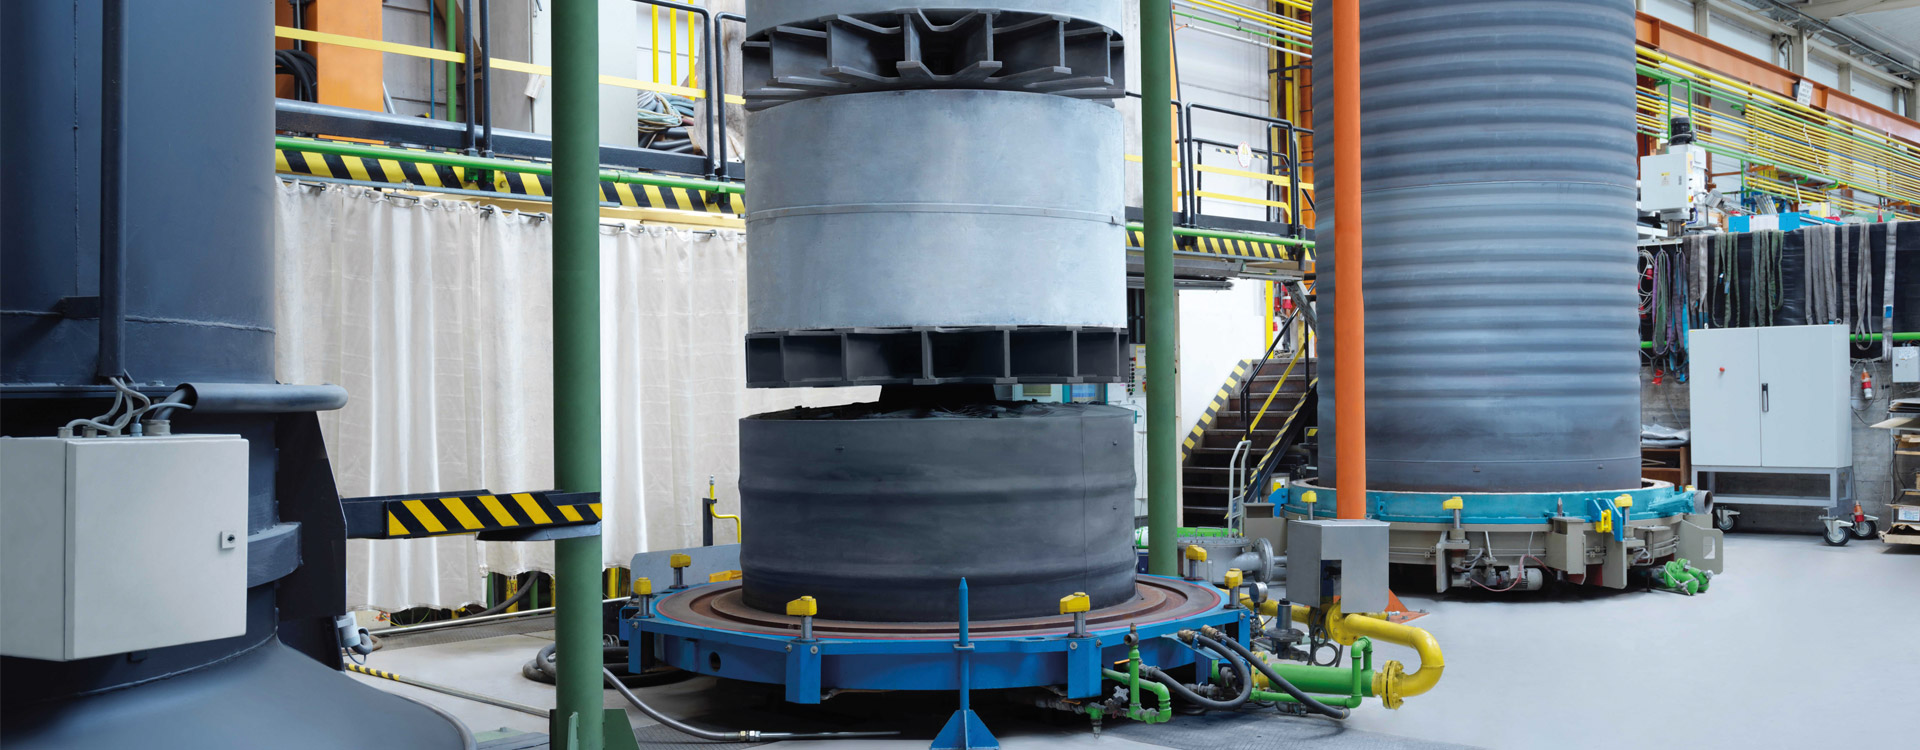 HITT high-temperature bell annealer (HBAF) charged with 2 GO coils